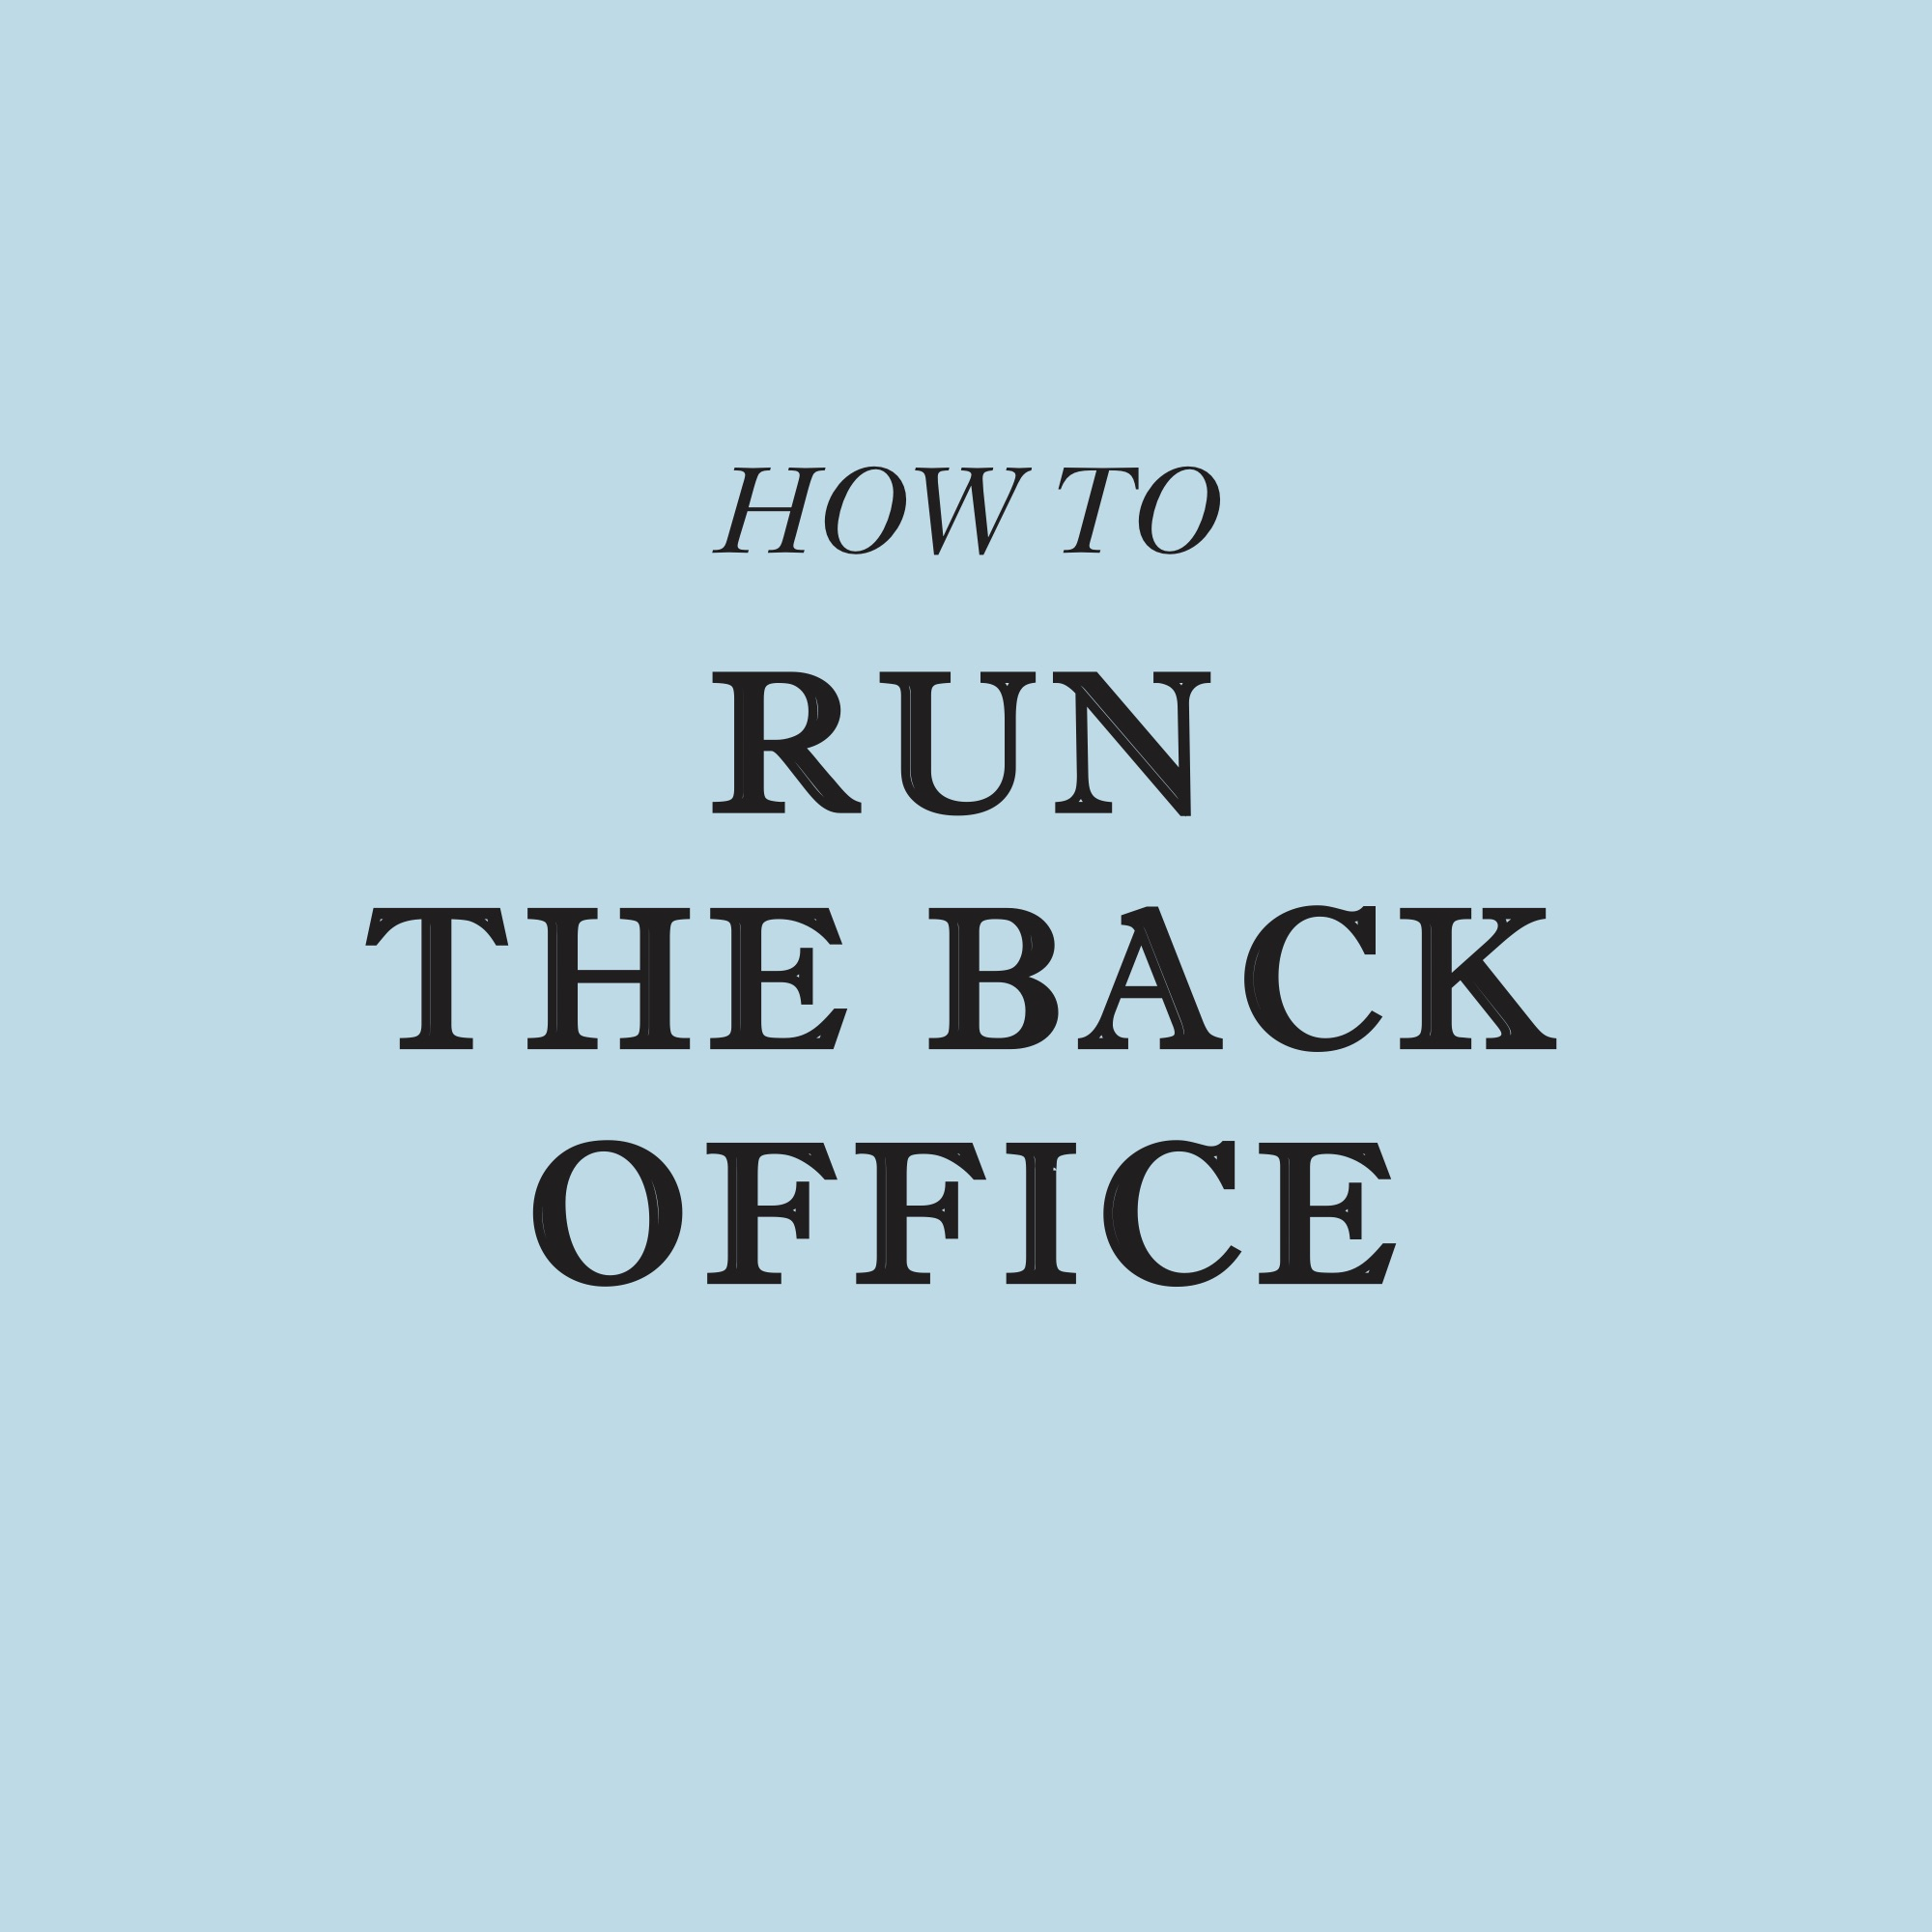 Run the Back office_Layout 1.jpg